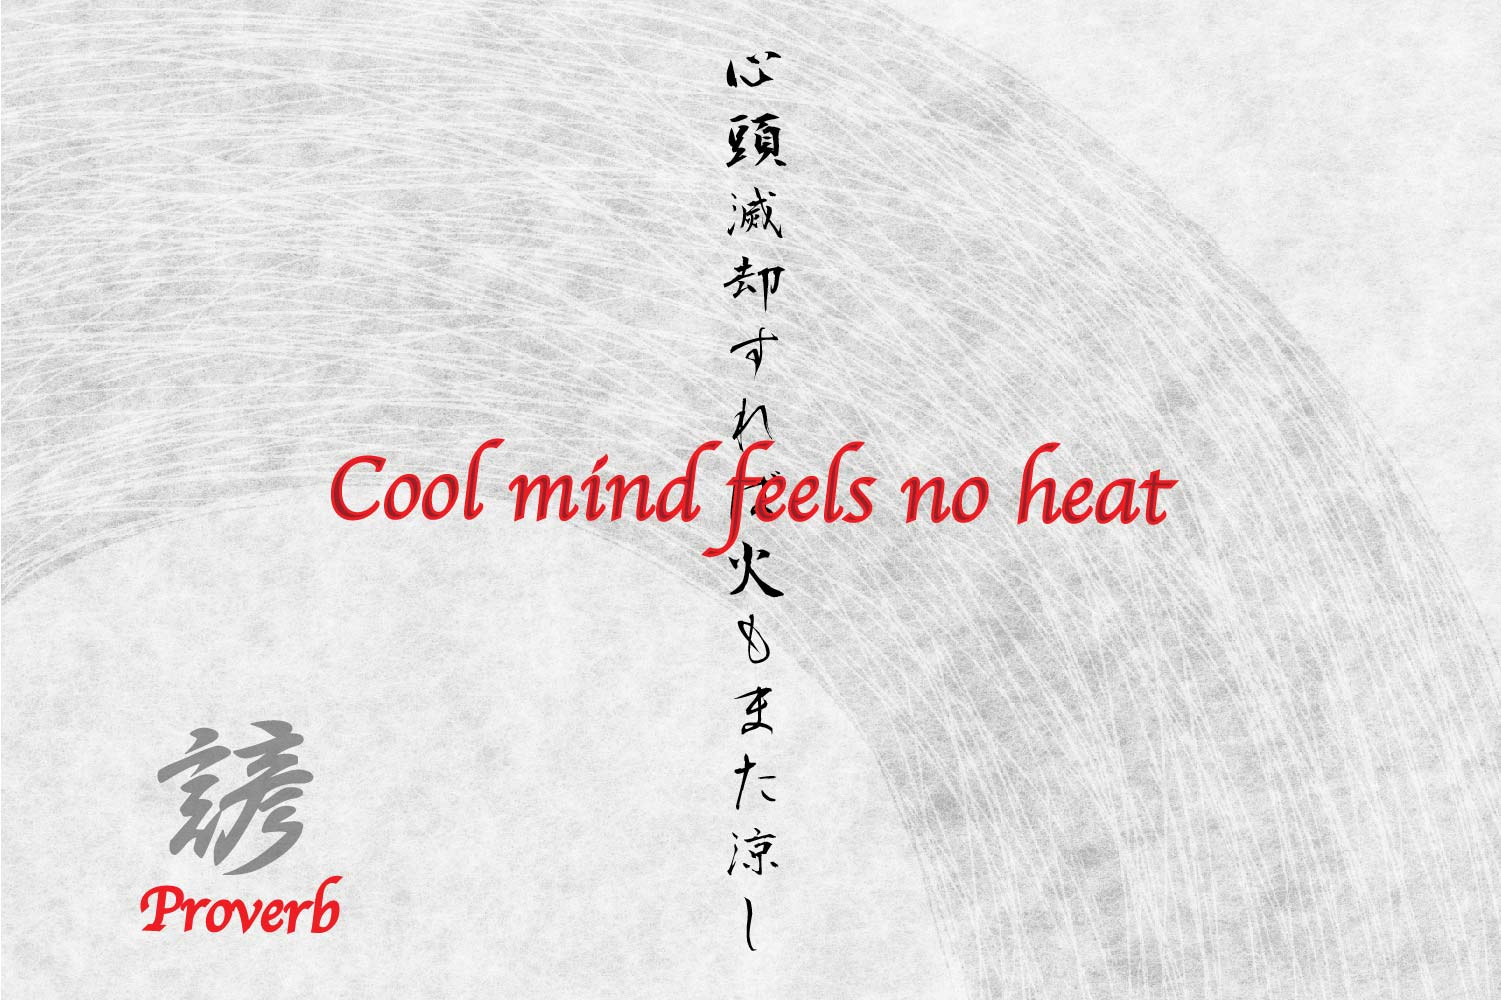 Japanese proverb for Tattoo cool mind feels no heat